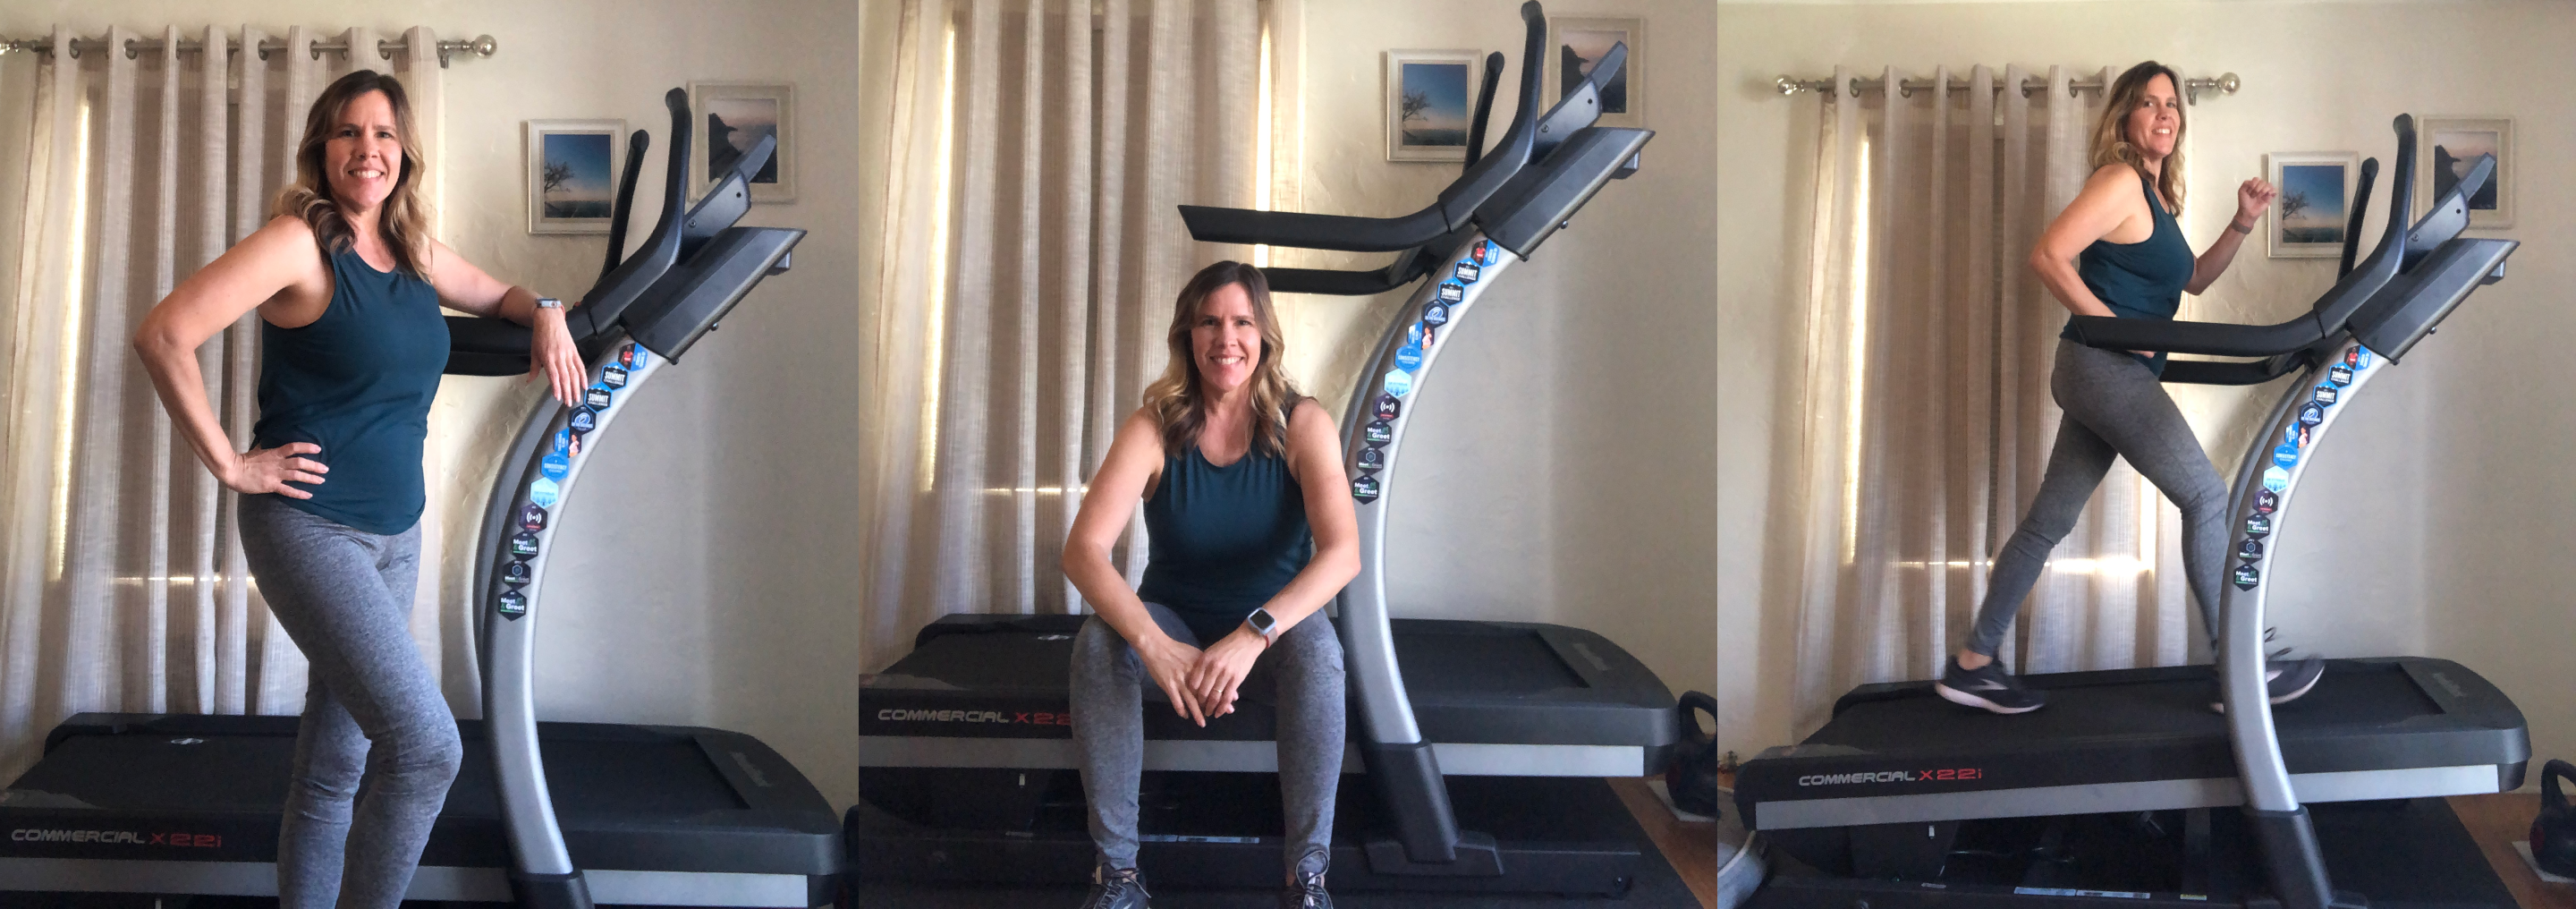 iFit Member Amy Smith working out on her NordicTrack X22i treadmill